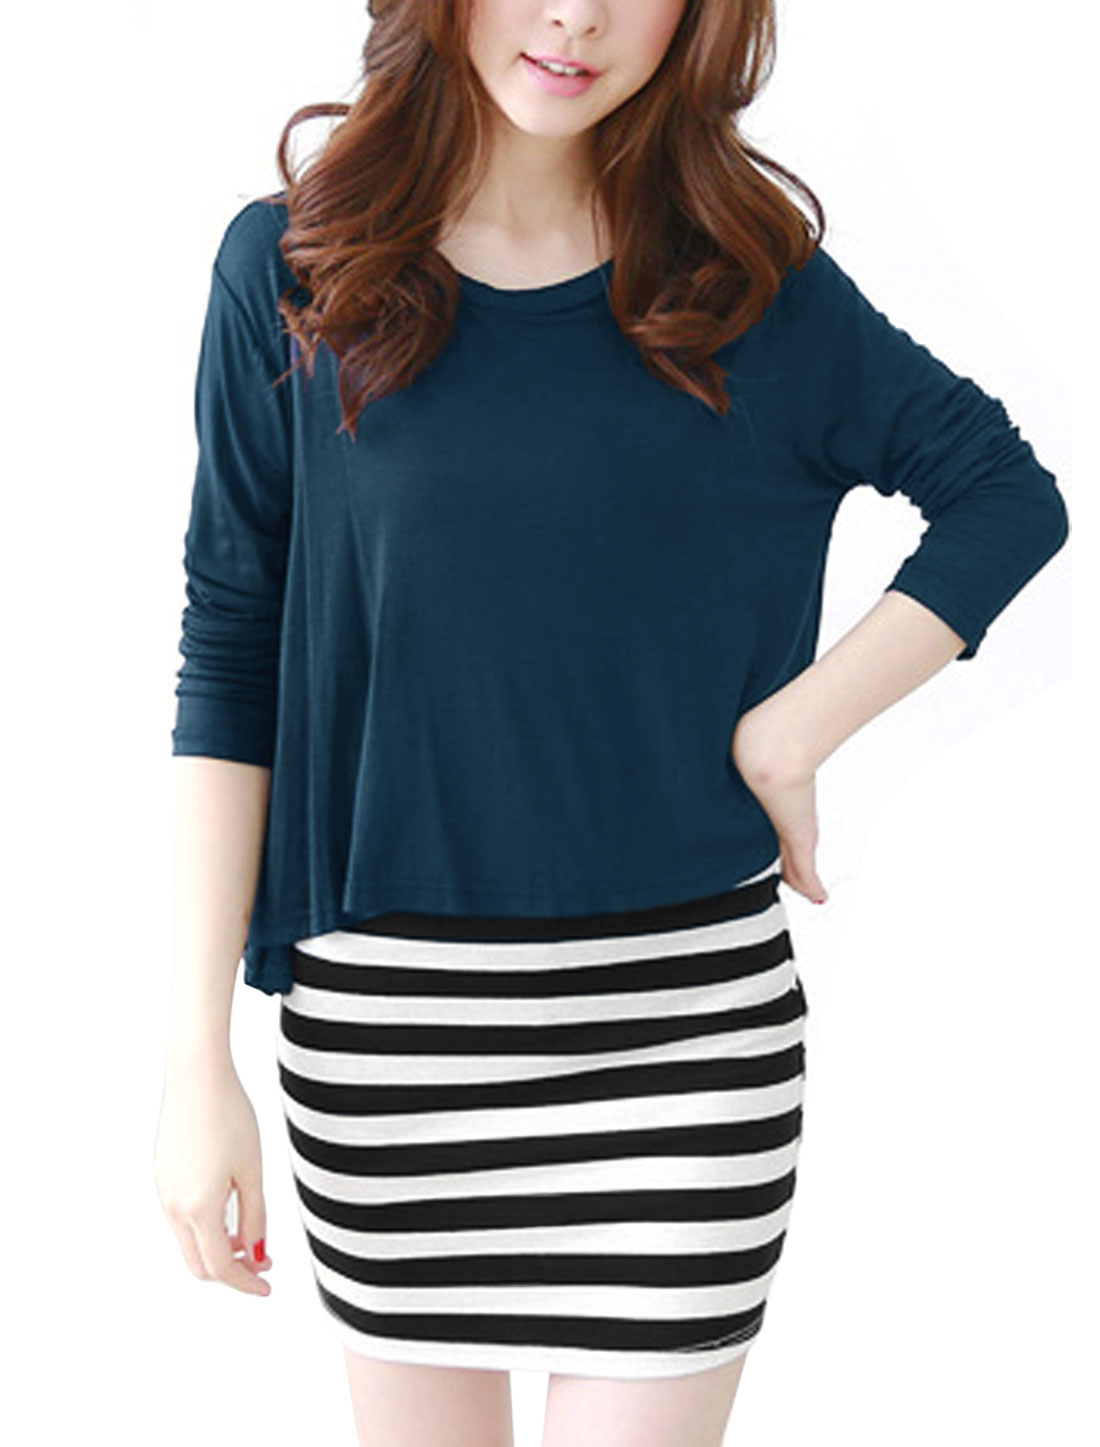 Ladies Navy Blue Round Neck Long Sleeves Top w Pullover Stripes Dress S